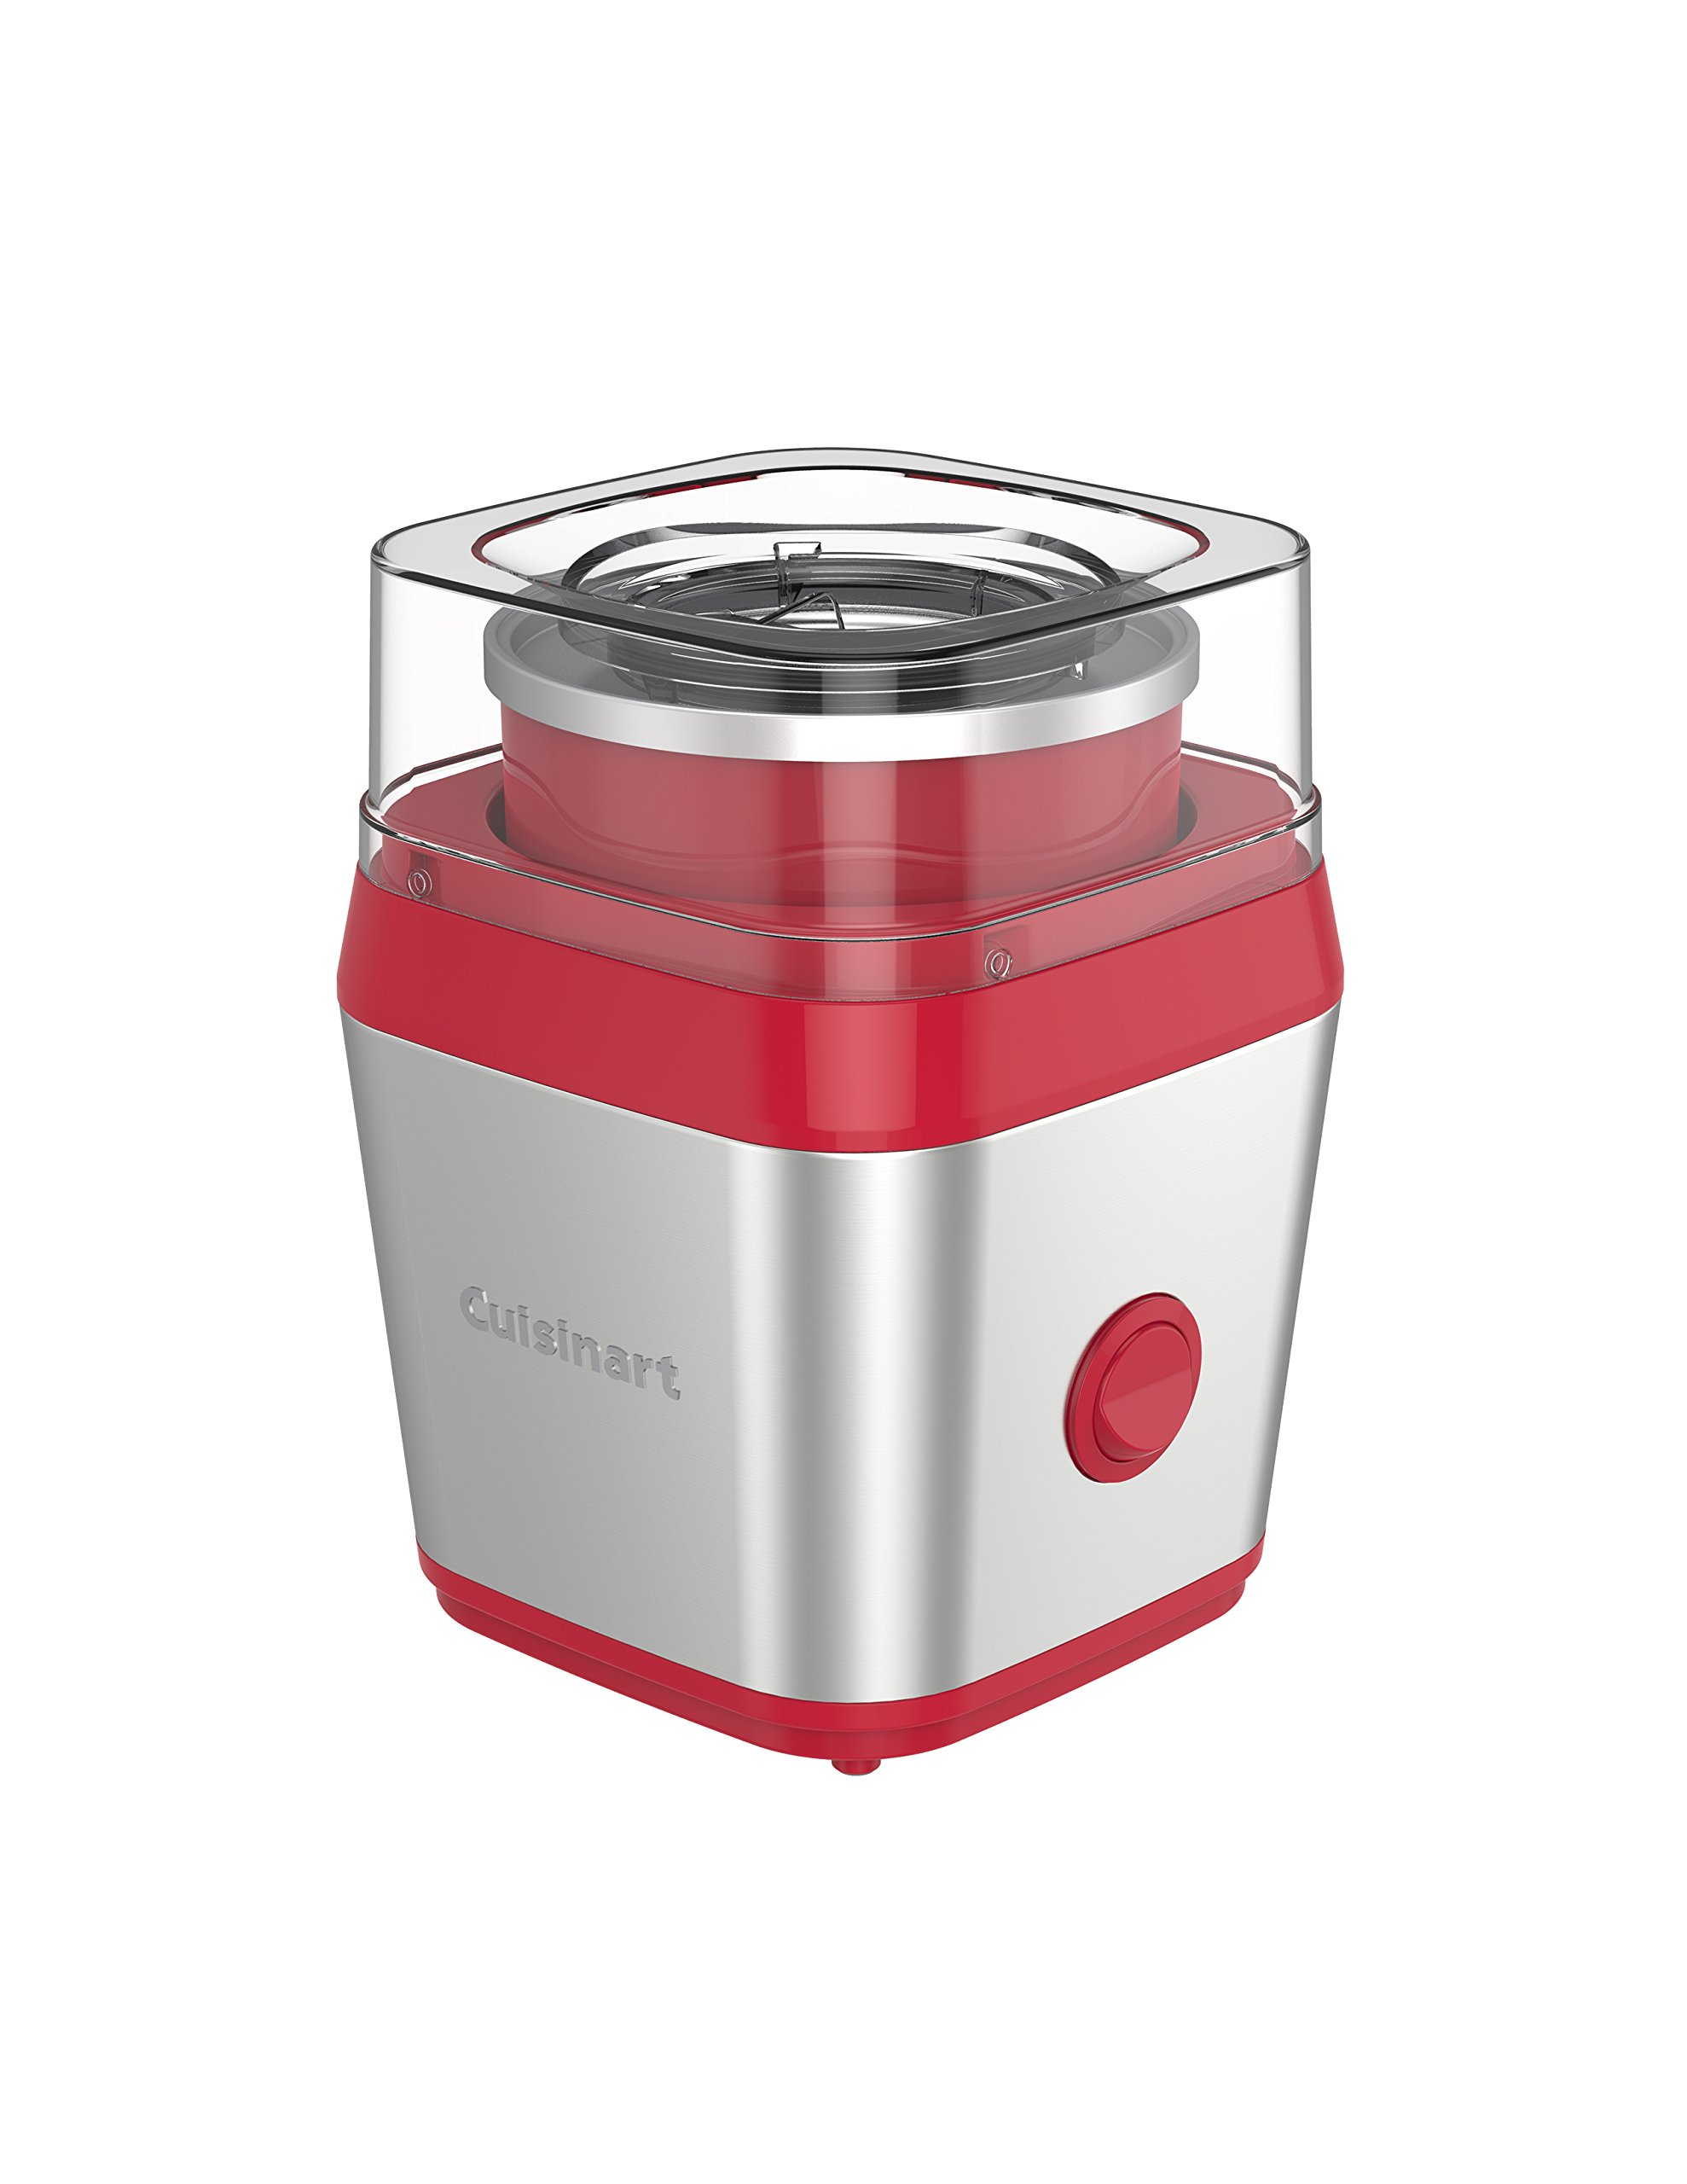 Cuisinart ICE-31BRQVC Fruit Scoop Frozen Dessert & Ice Cream Maker, Berry